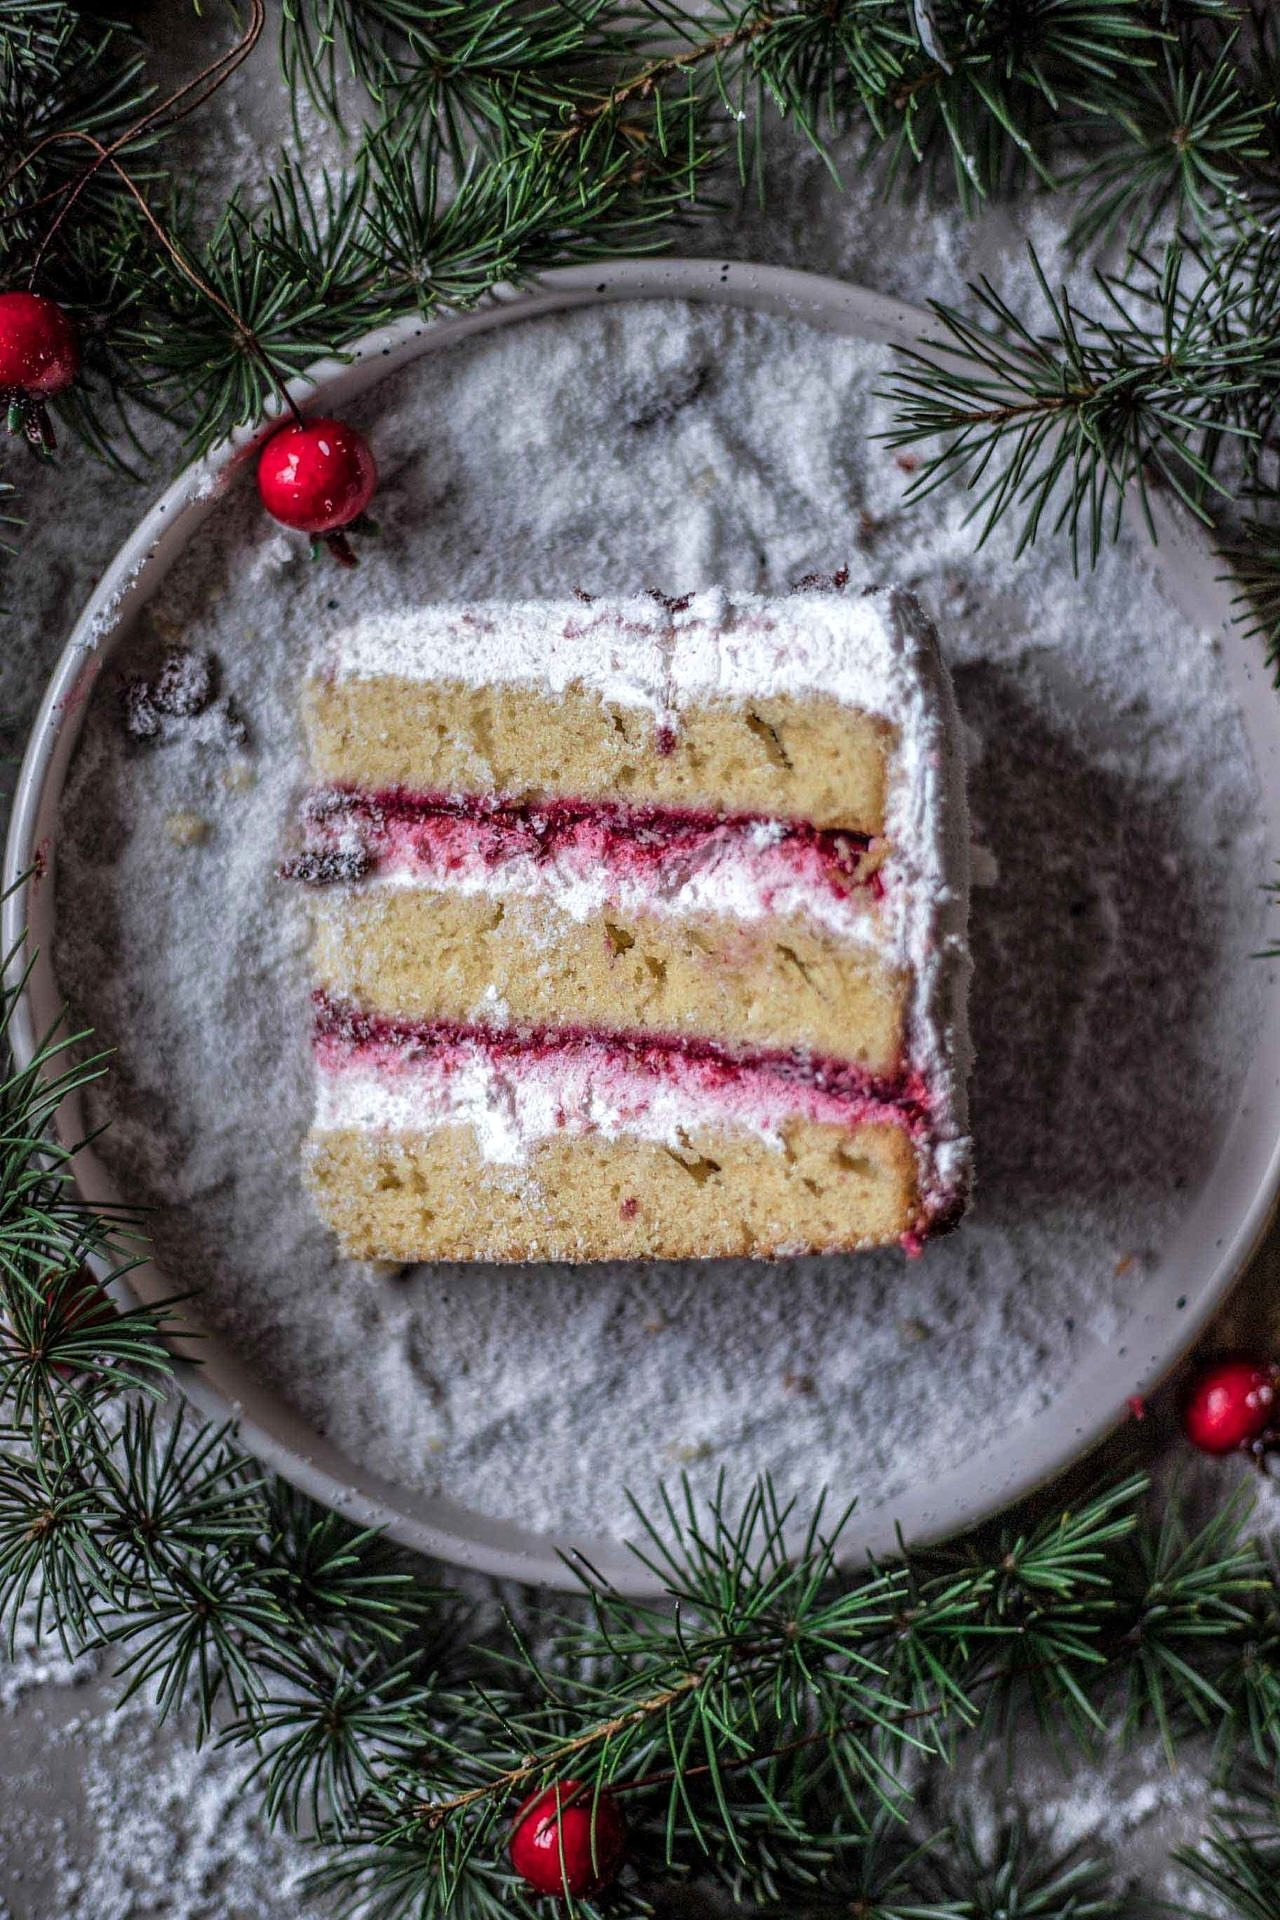 This Gluten-Free Cranberry Cake with Cream Cheese Frosting is super flavorful, light, fluffy, creamy, perfectly sweetened and so delicious.